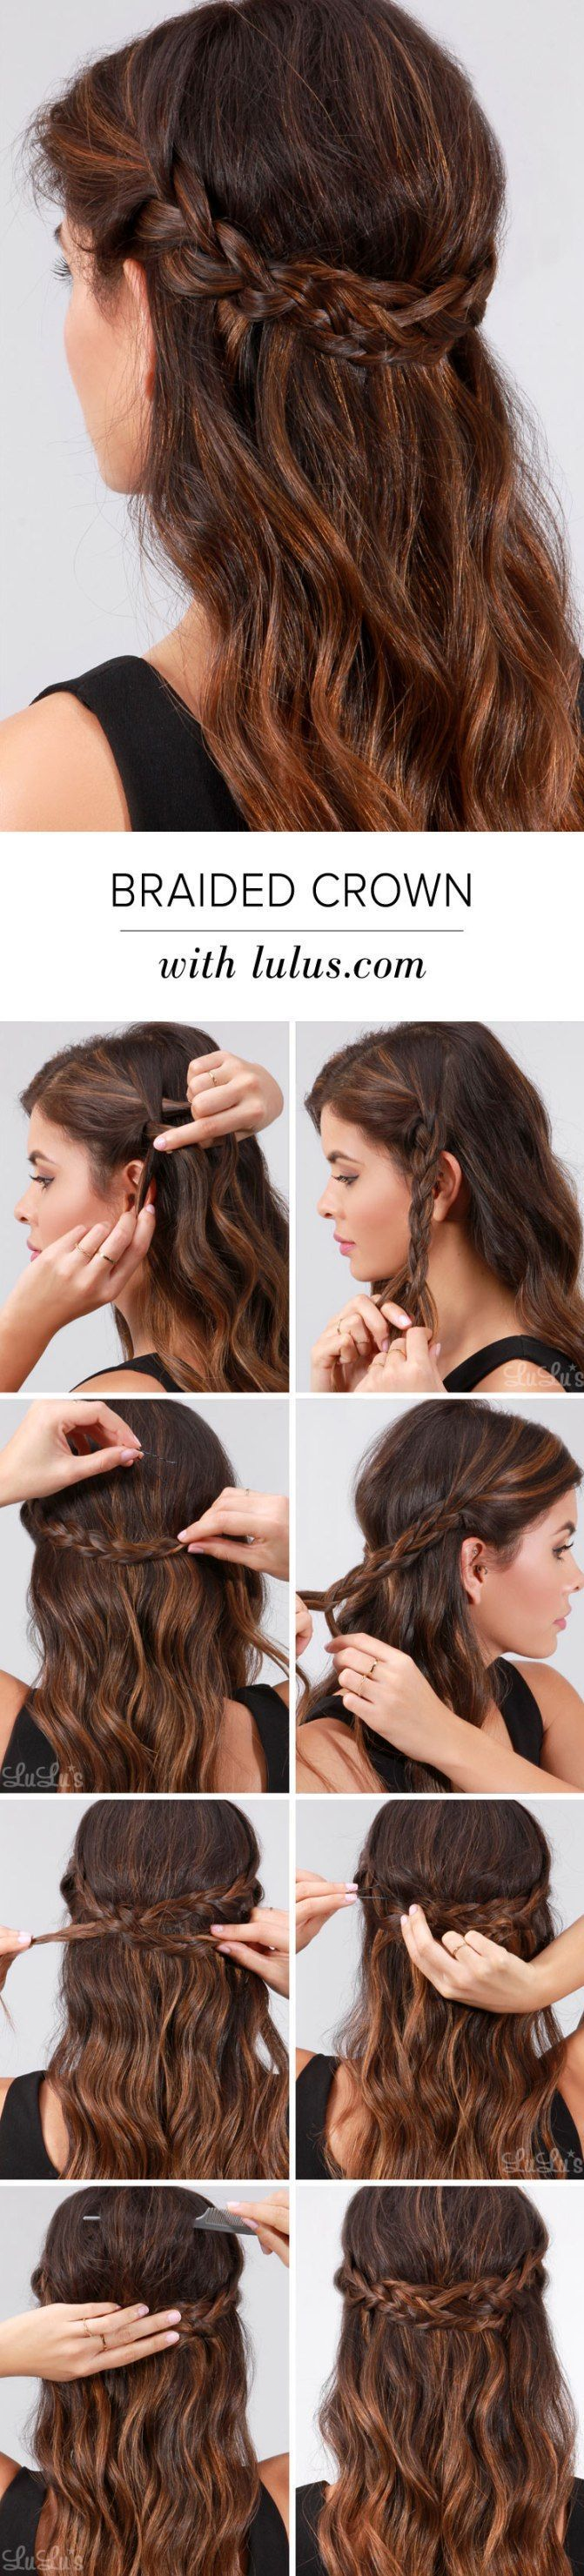 easy braids that will fix any bad hair day diybunker hair